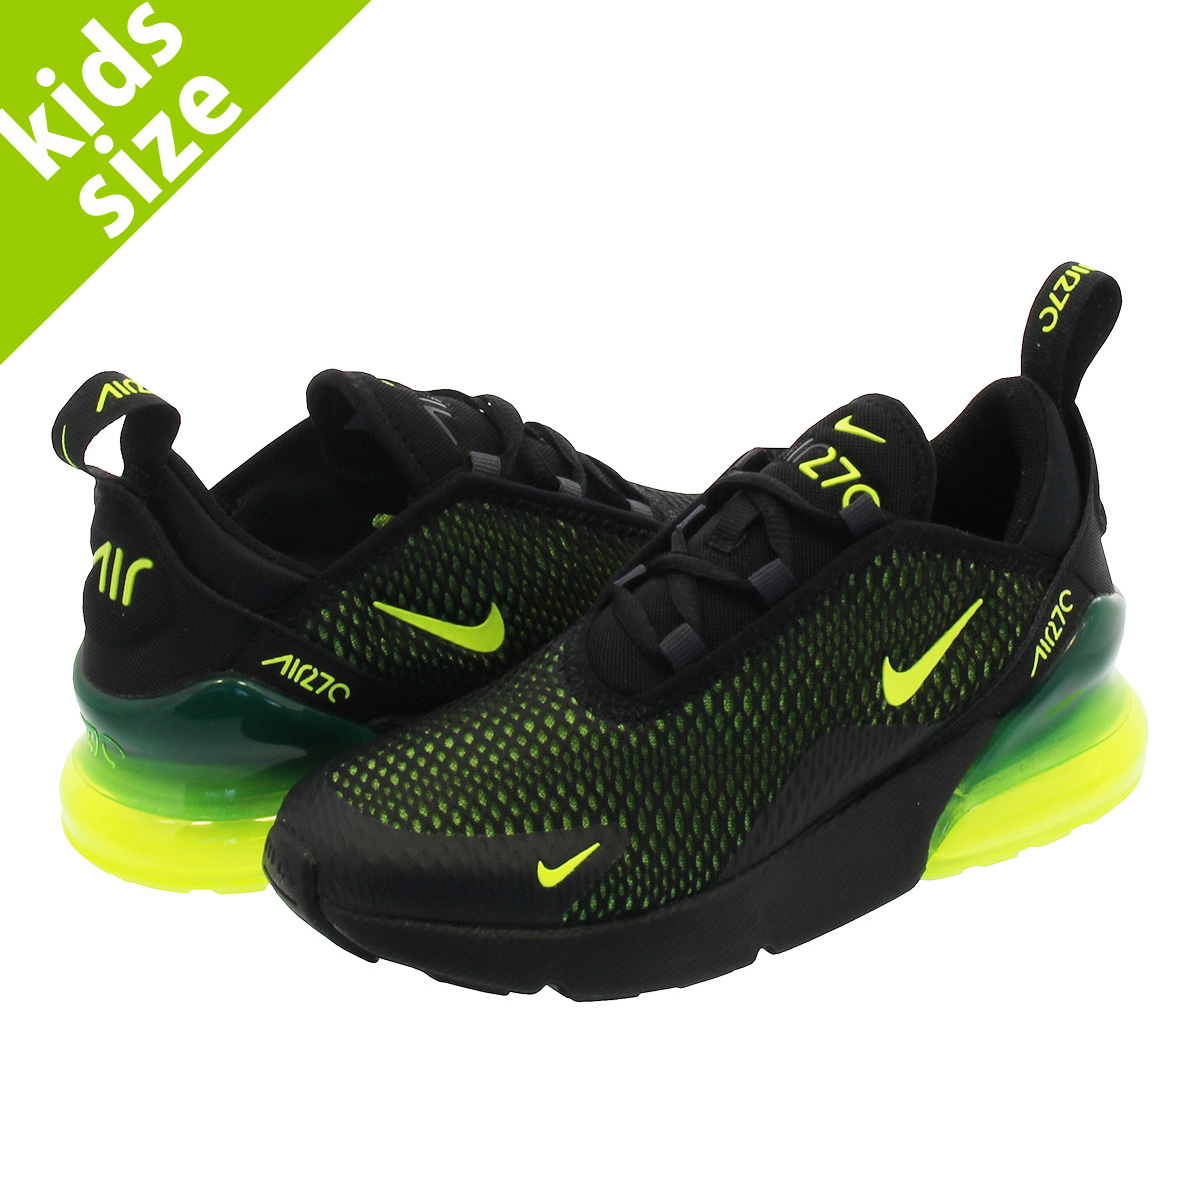 df4d9df6c3 LOWTEX BIG-SMALL SHOP: NIKE AIR MAX 270 PS Kie Ney AMAX 270 PS BLACK ...